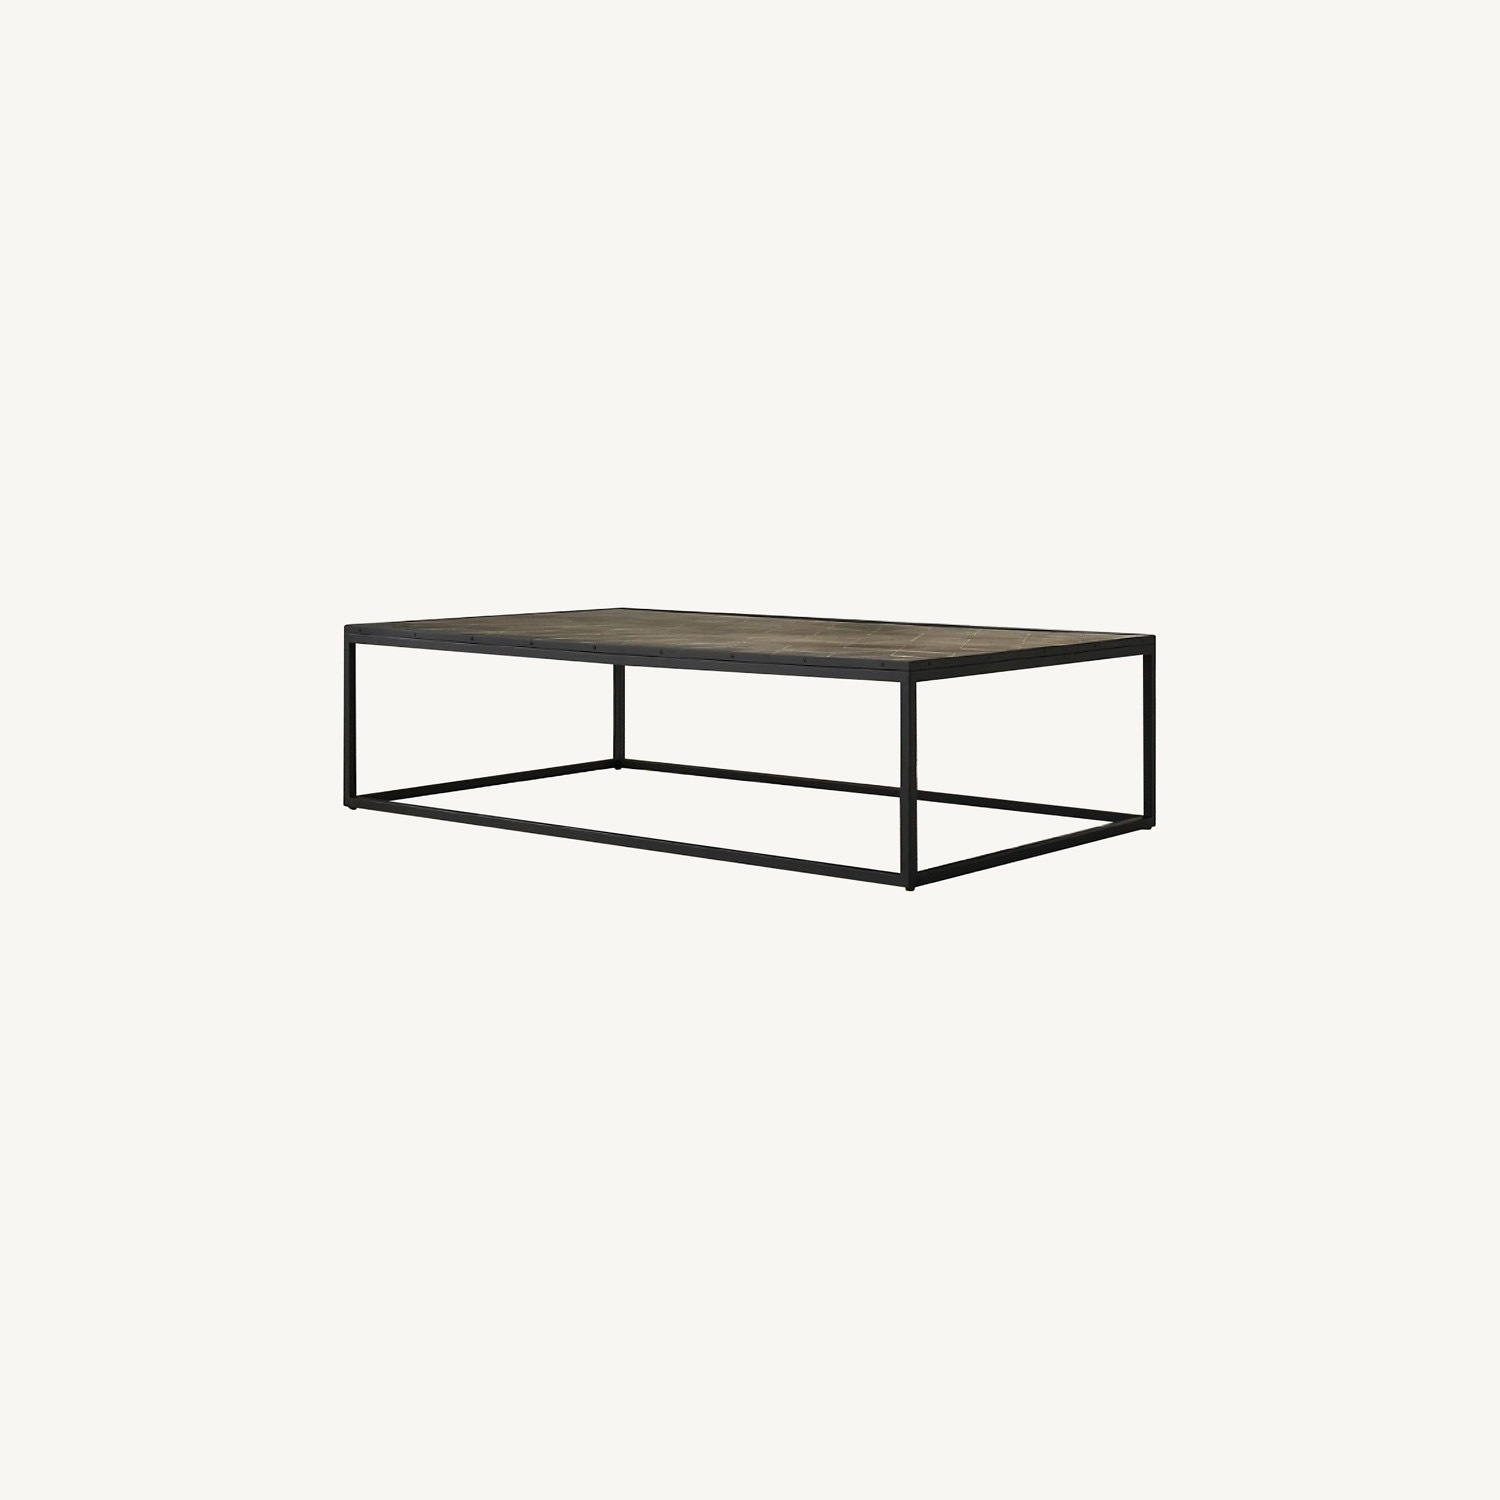 Restoration Hardware Metal Parquet Coffee Table - image-0